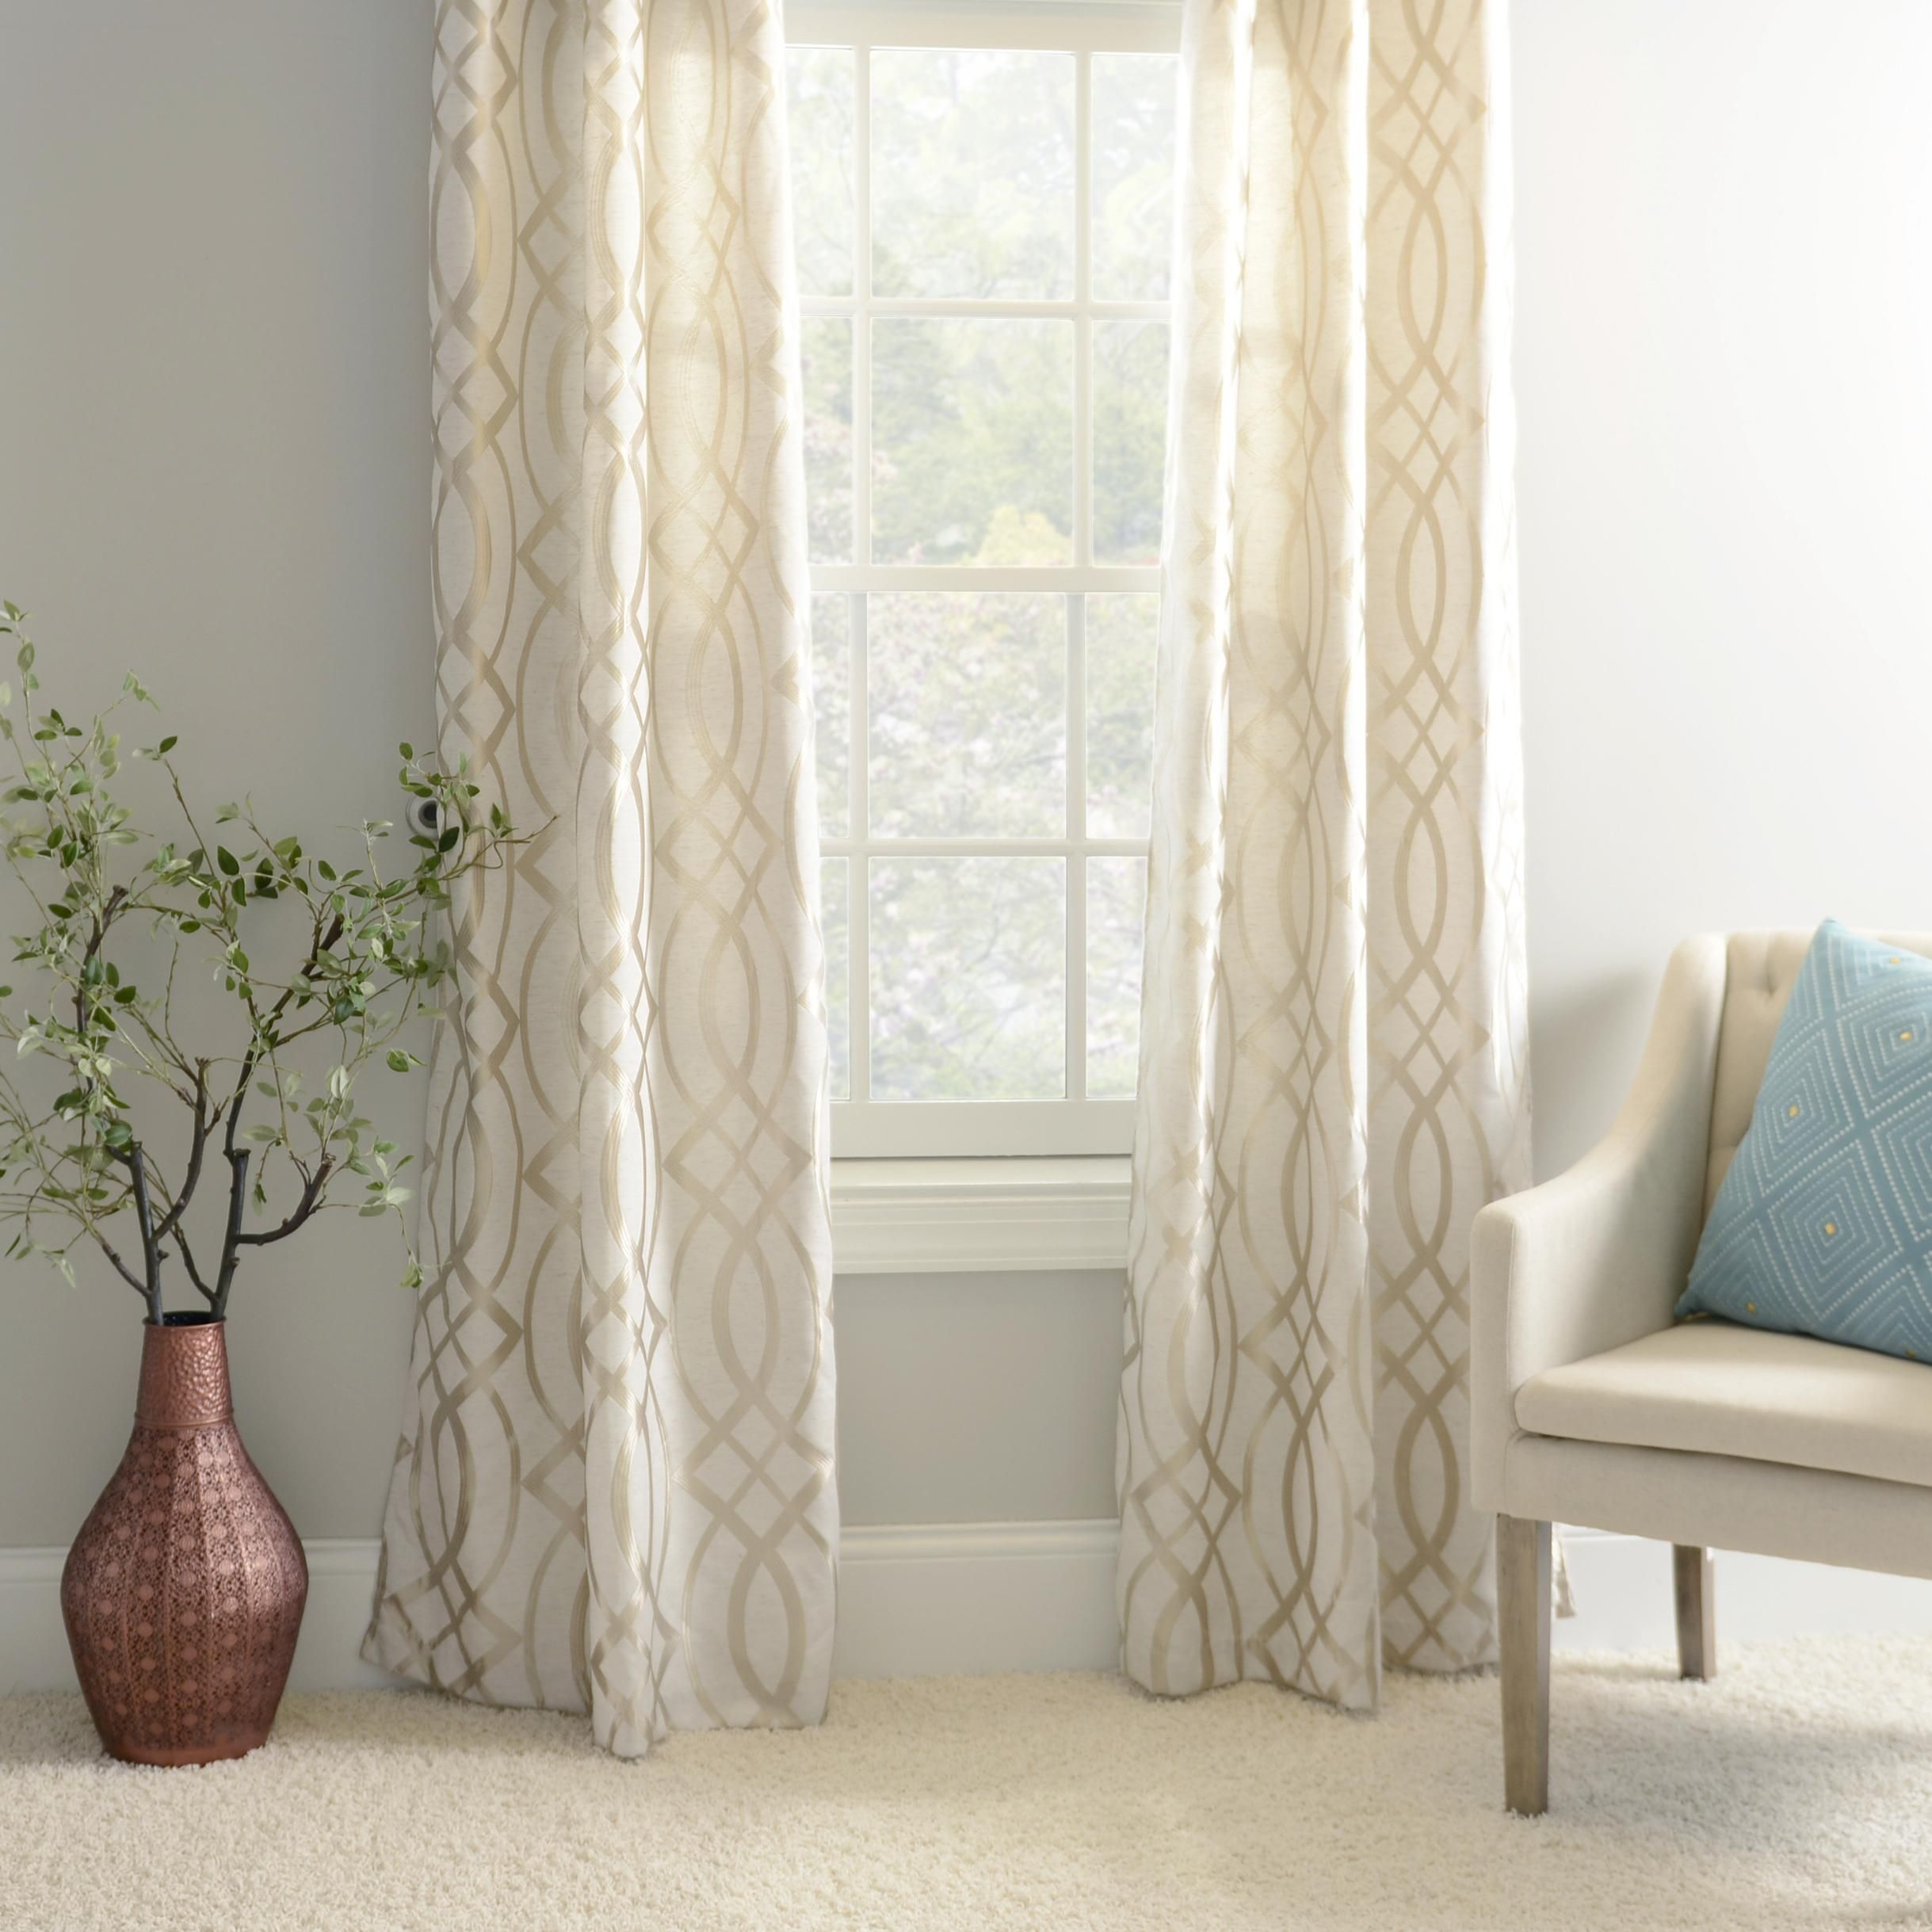 Product Details Metallic Avalon Curtain Panel Set, 84 In